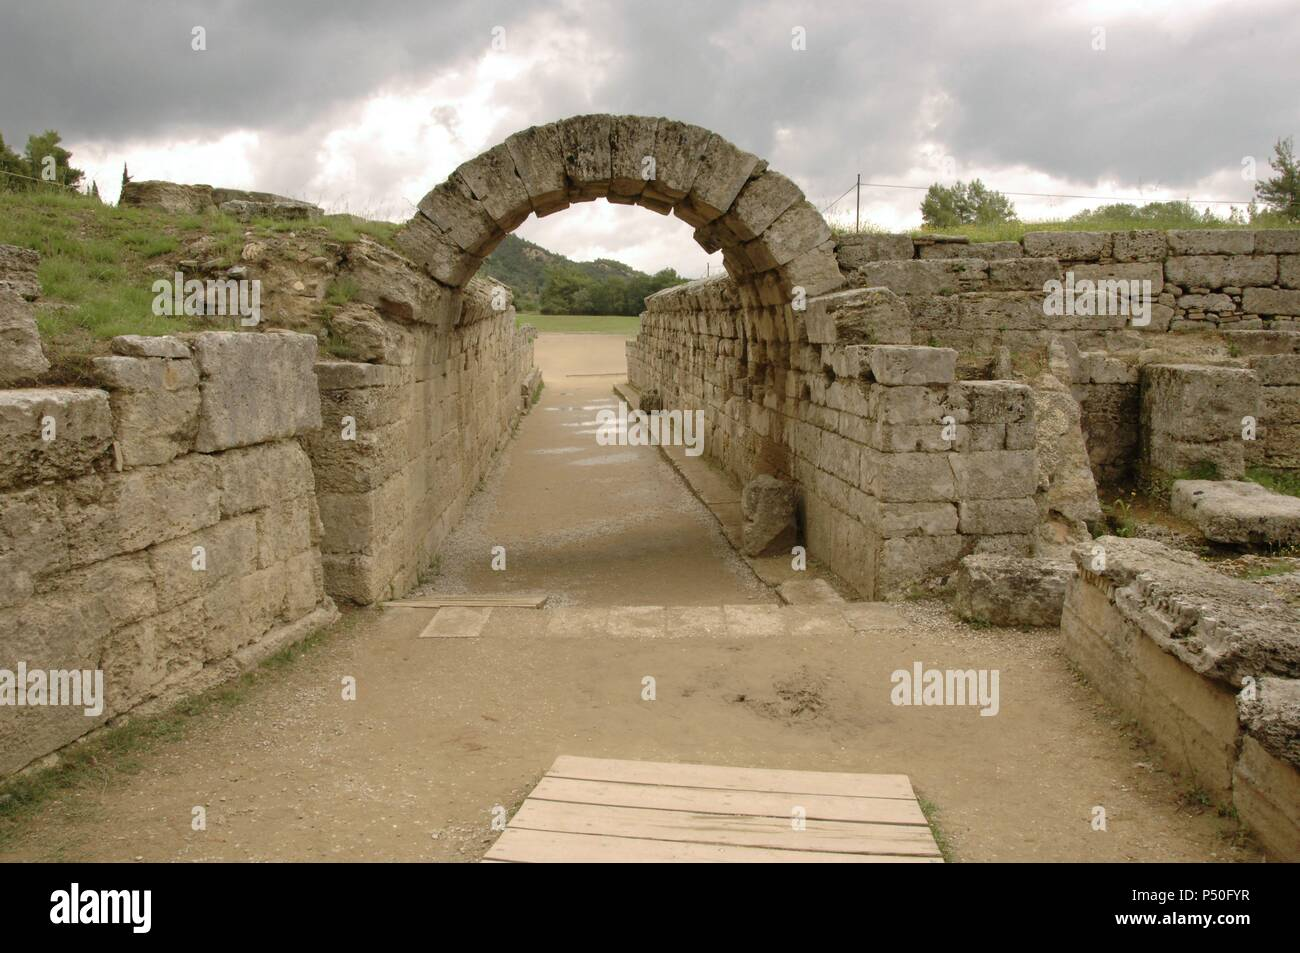 Greek Art. Sanctuary of Olympia. Olympic stadium.  The vaulted tunnel leading into the stadium. Hellenistic period. Elis. Peloponesse. Greece. - Stock Image